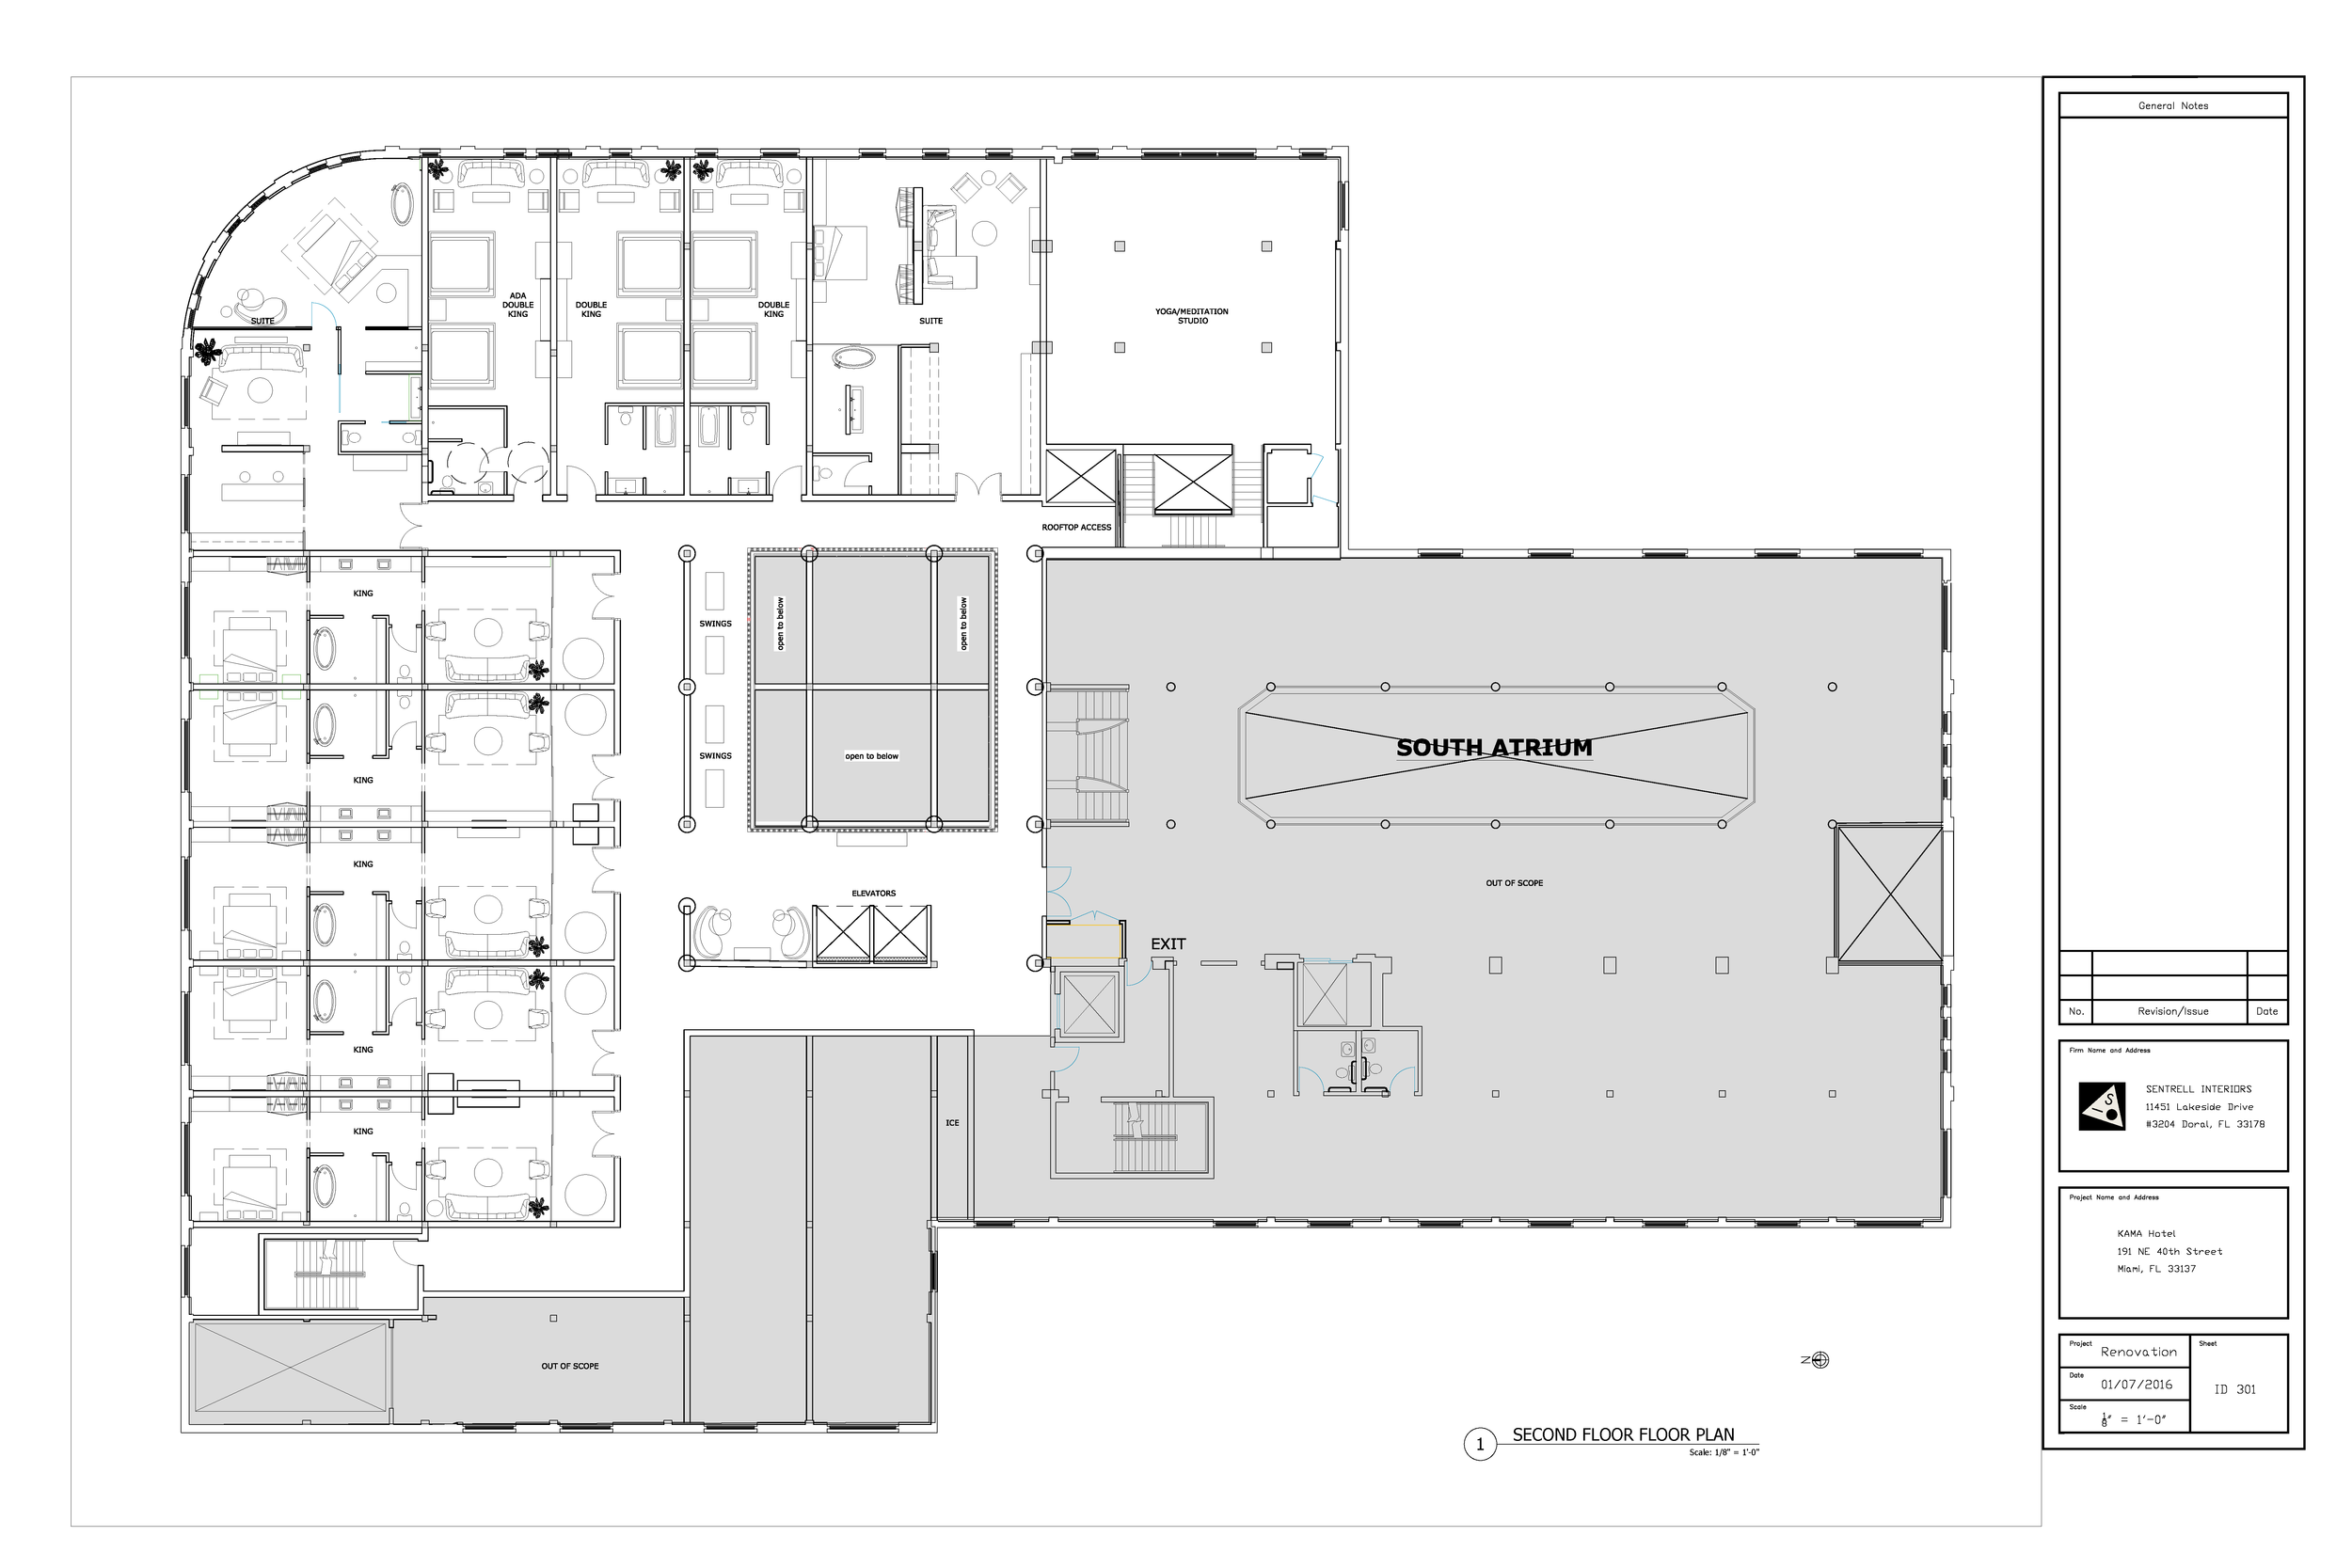 ID 301 Second Floor Floor Plan.png